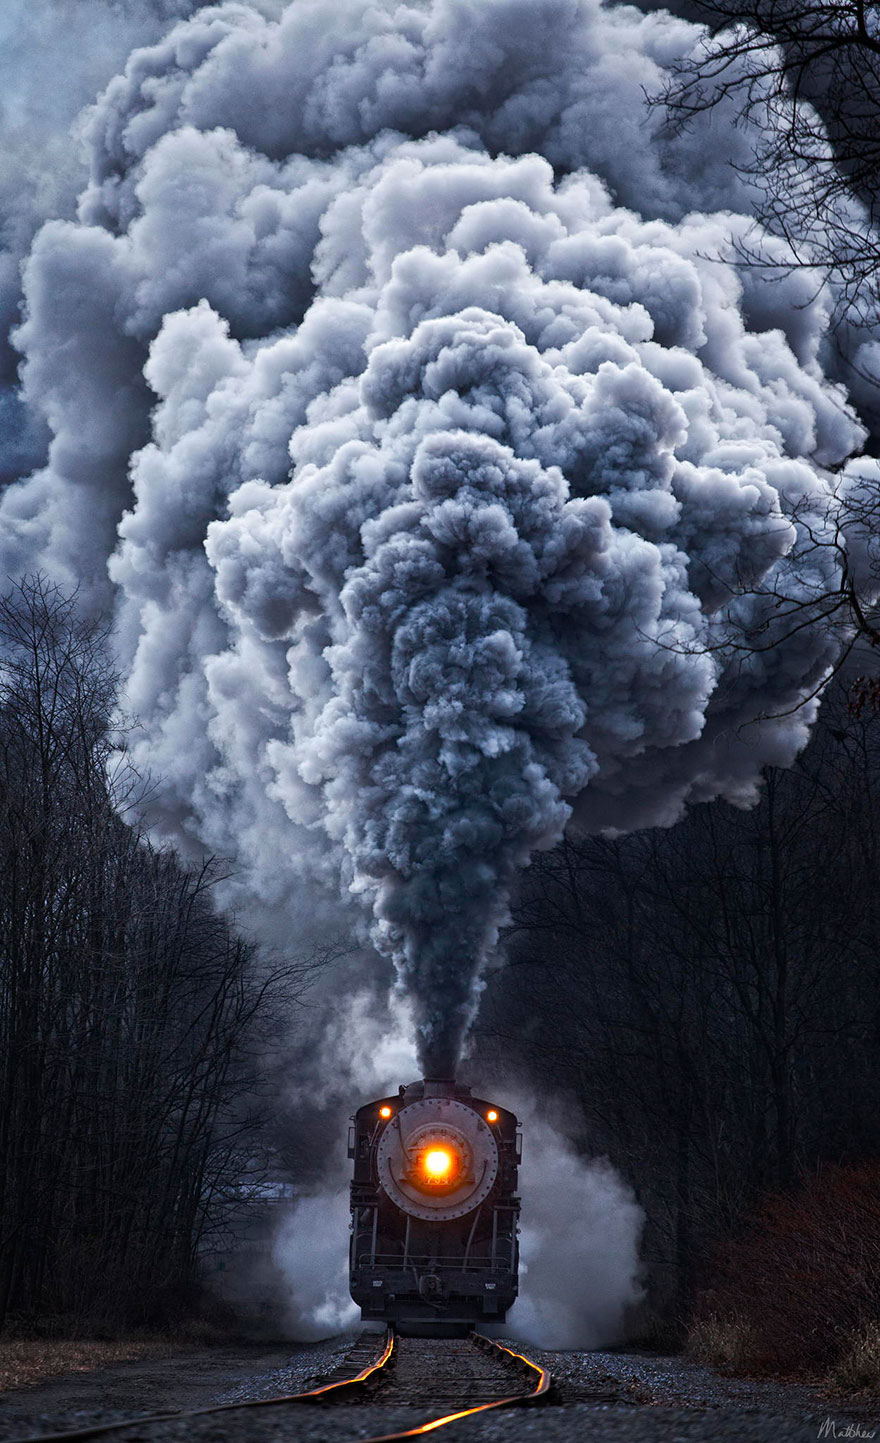 train-photos-matthew-malkiewicz-1